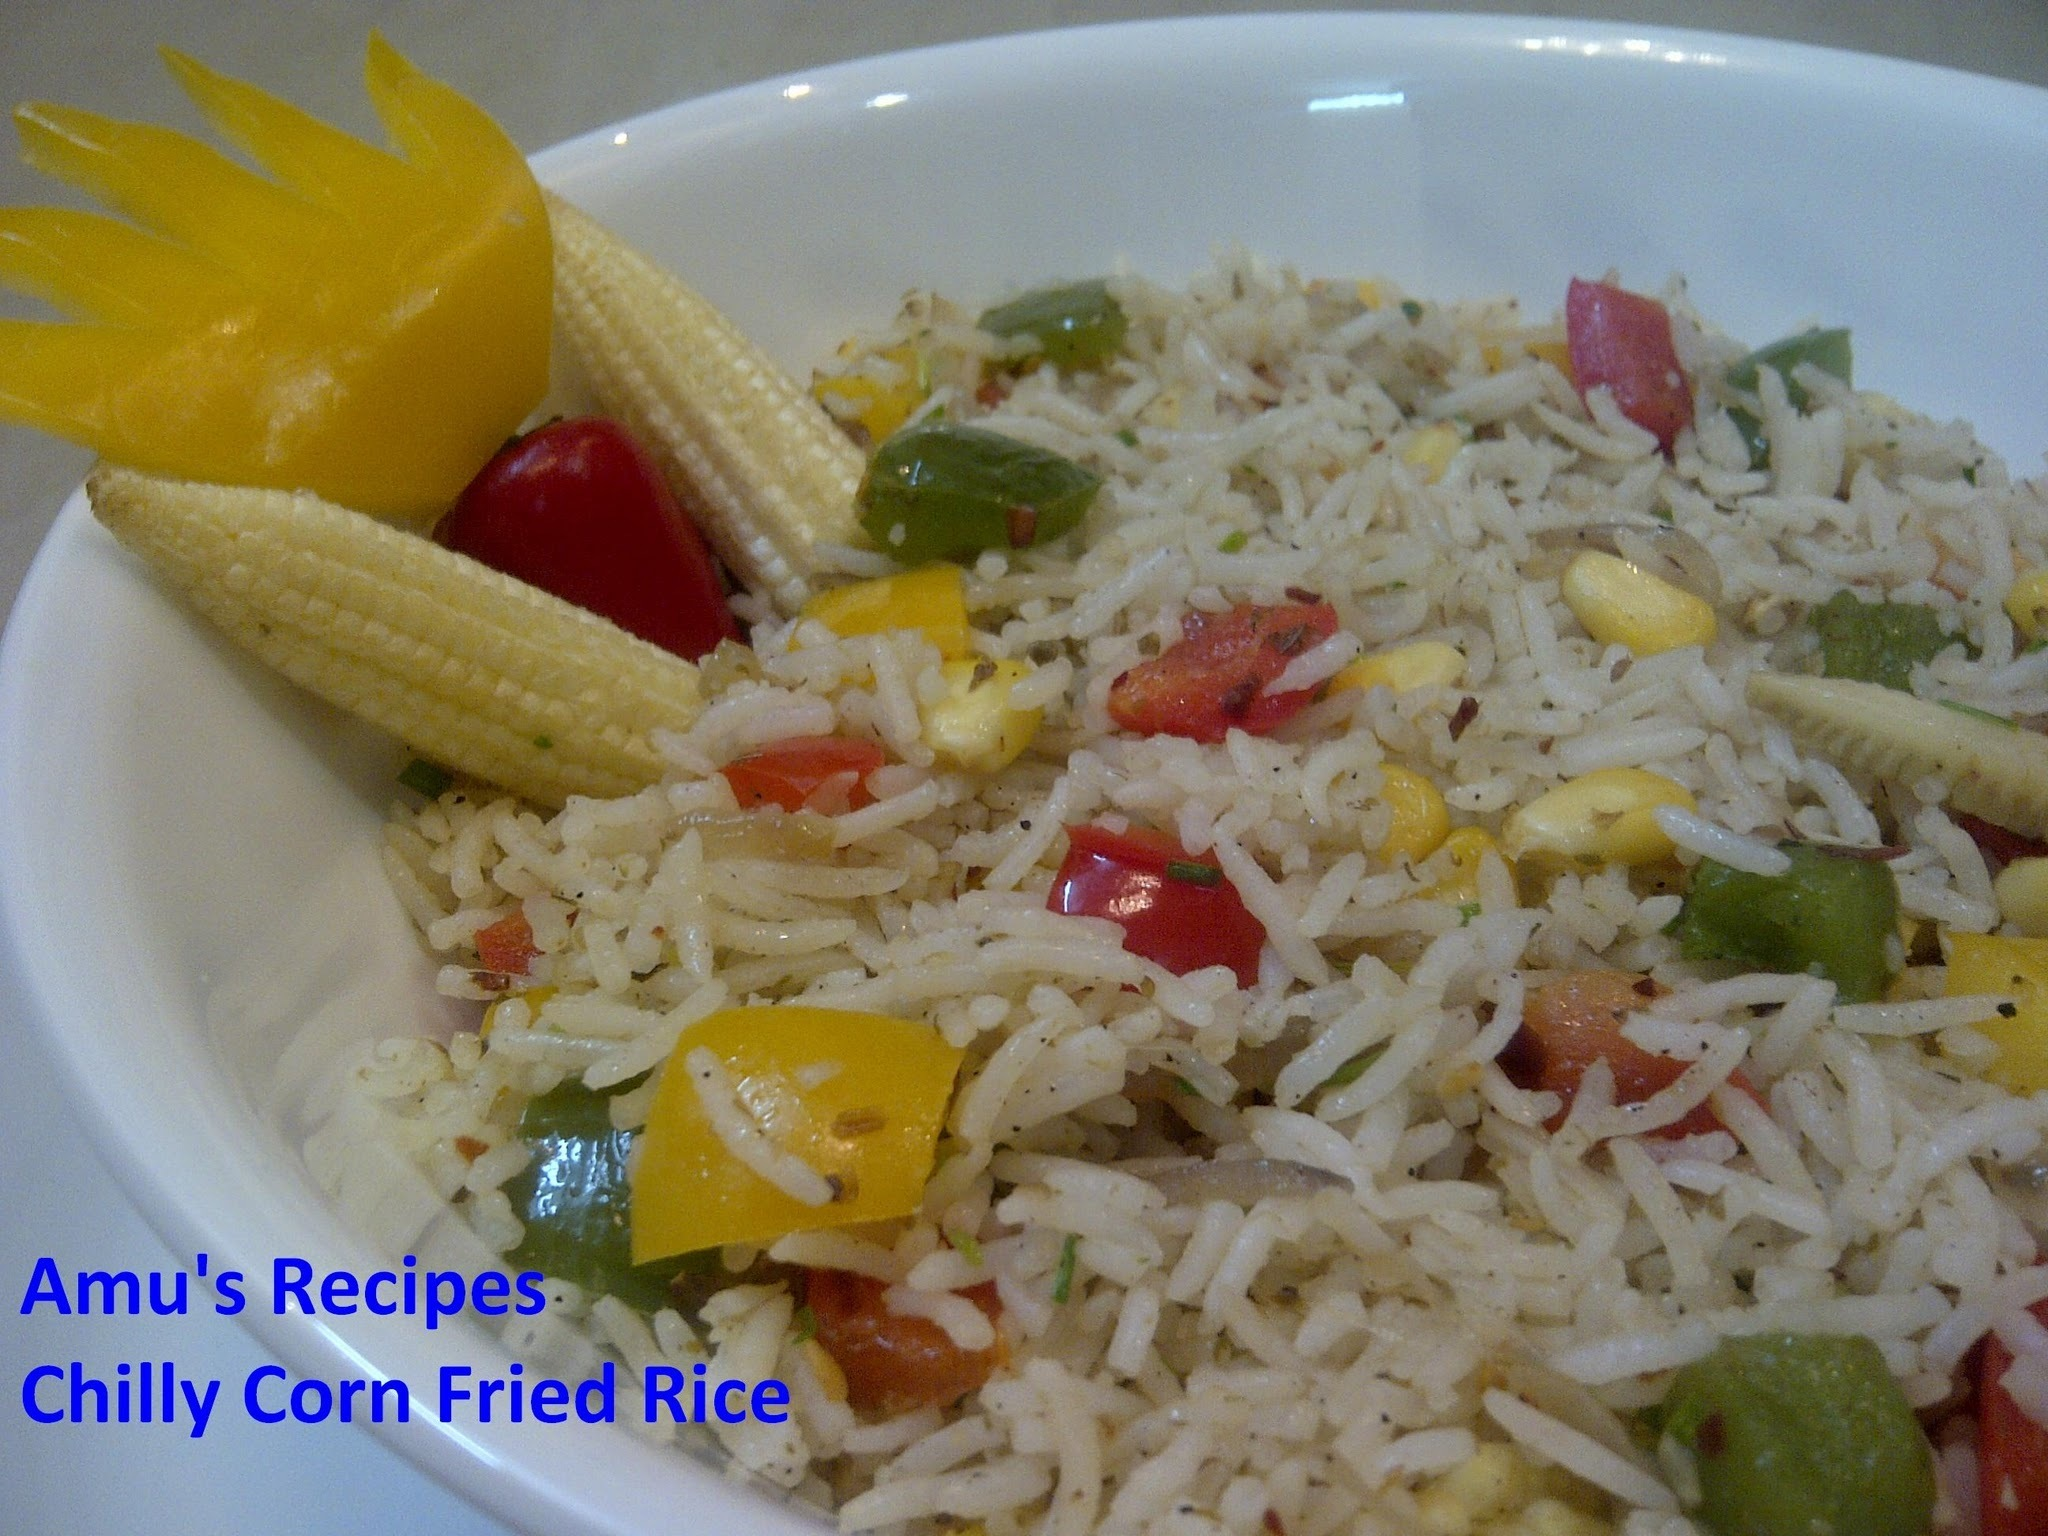 Chilly Corn Fried Rice